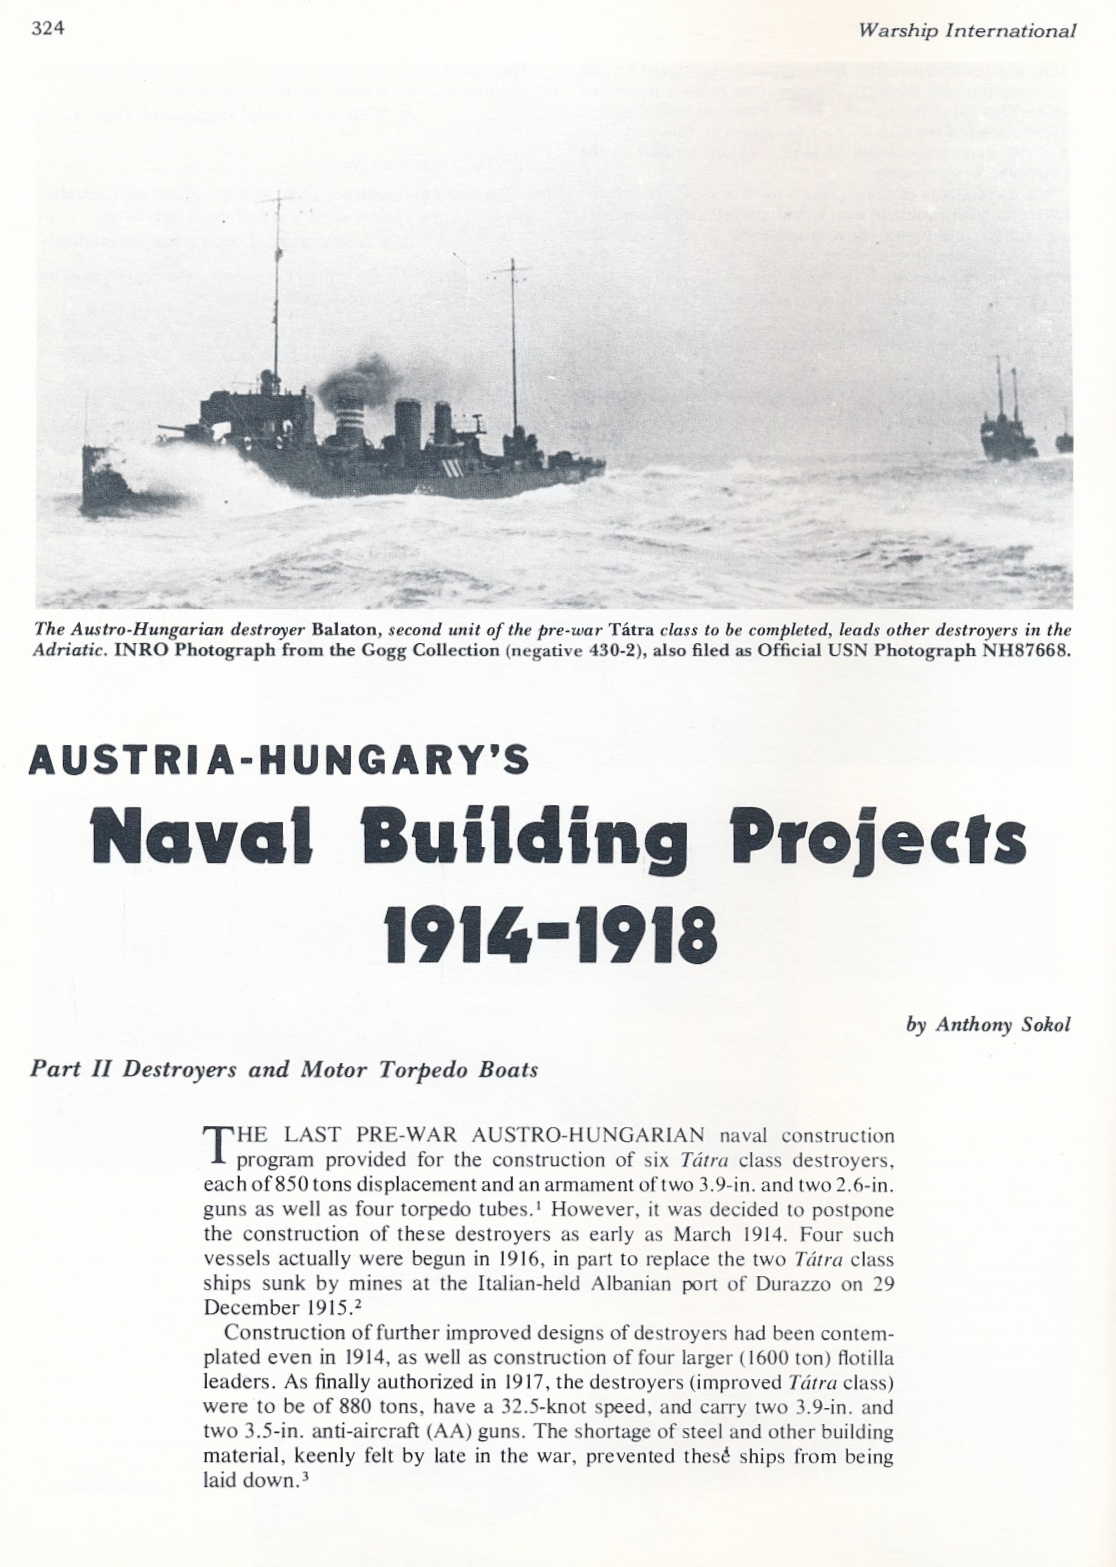 Austria-Hungary's building projects 1914-1918 Part II ...